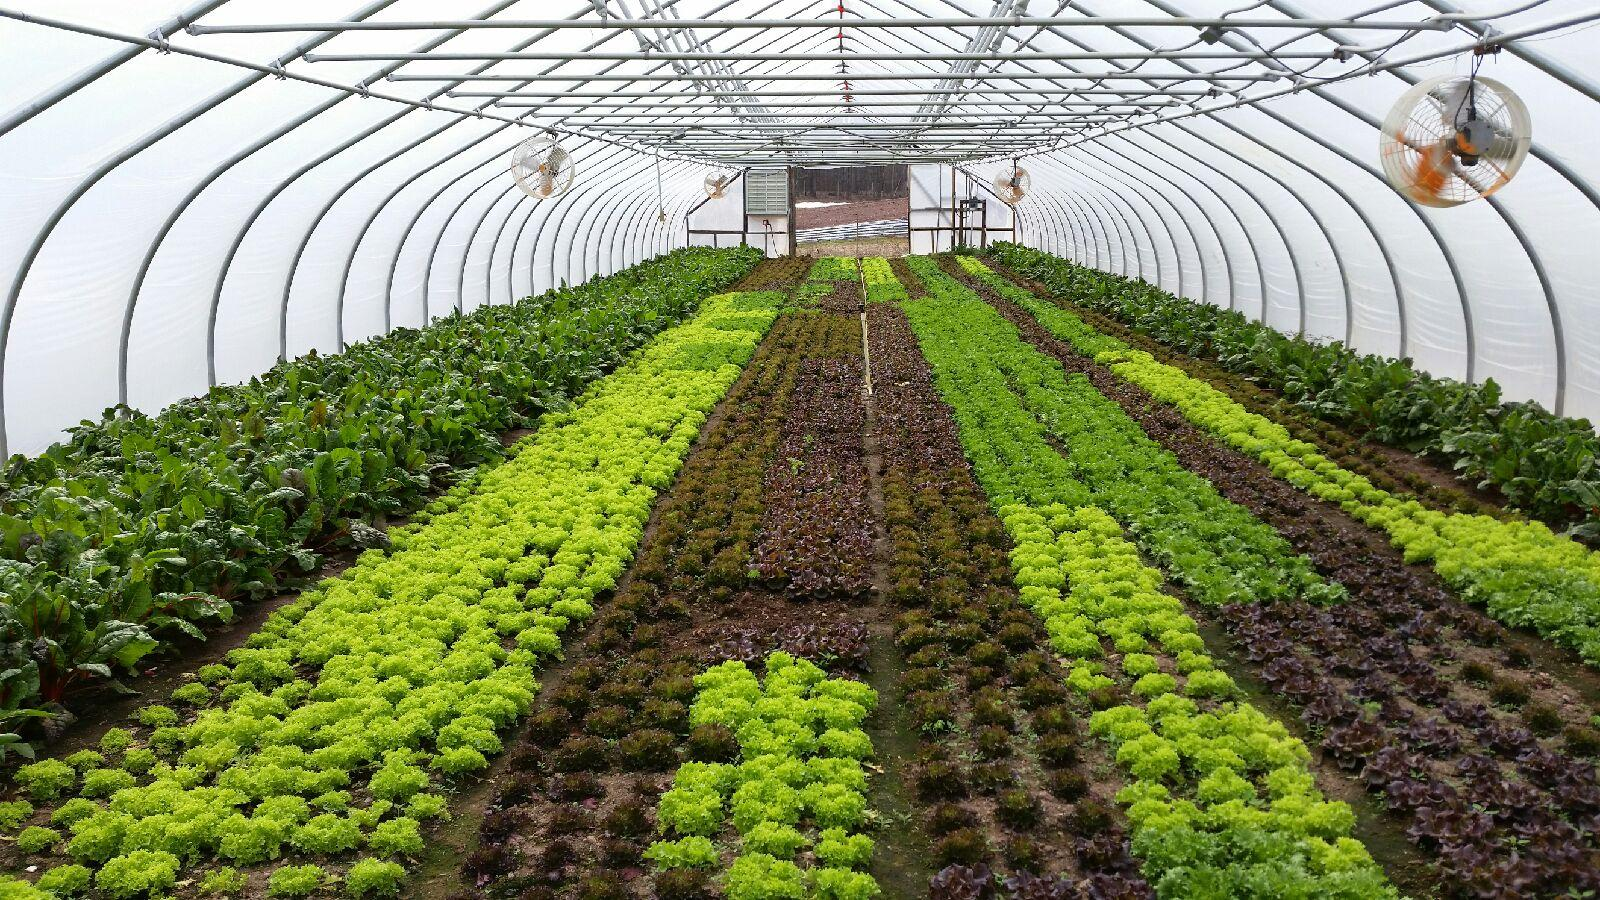 Tomatoes and lettuce and eggplant, oh my! Farming warm-weather